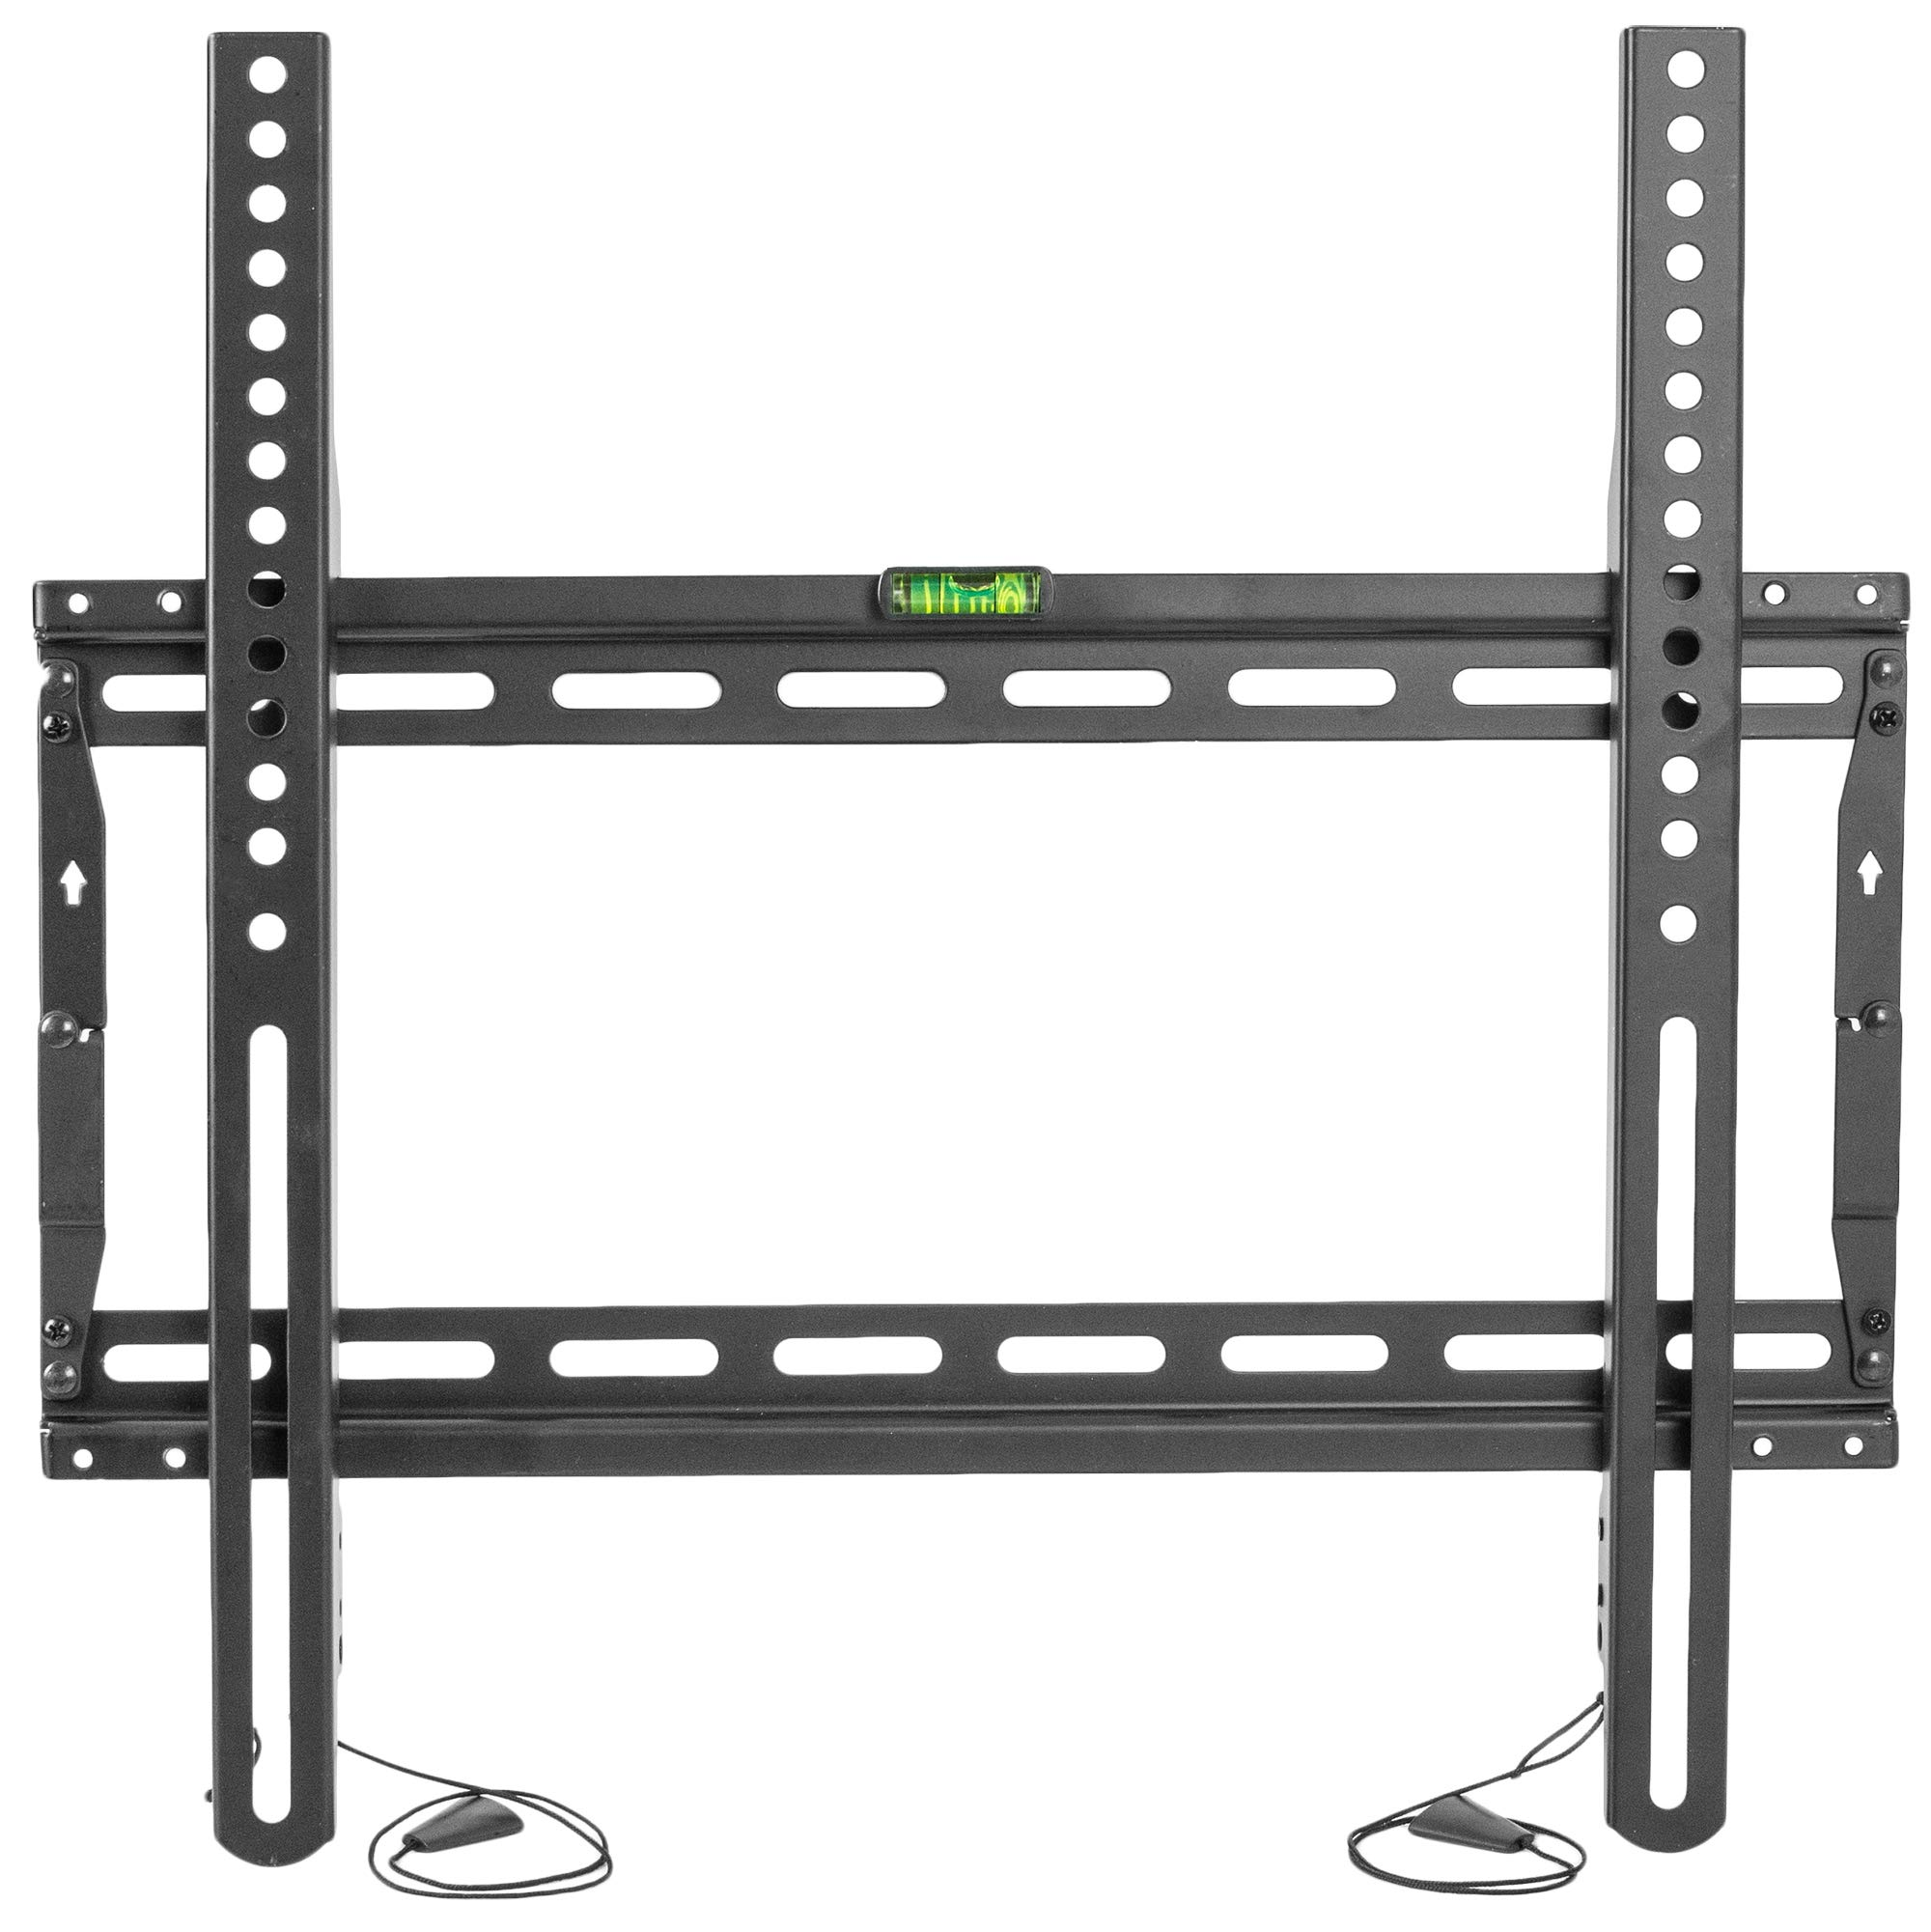 VIVO Extra Large TV Wall Mount for 32 to 70 inch Screens | Fixed Heavy Duty Folding Bracket (MOUNT-VW70F)